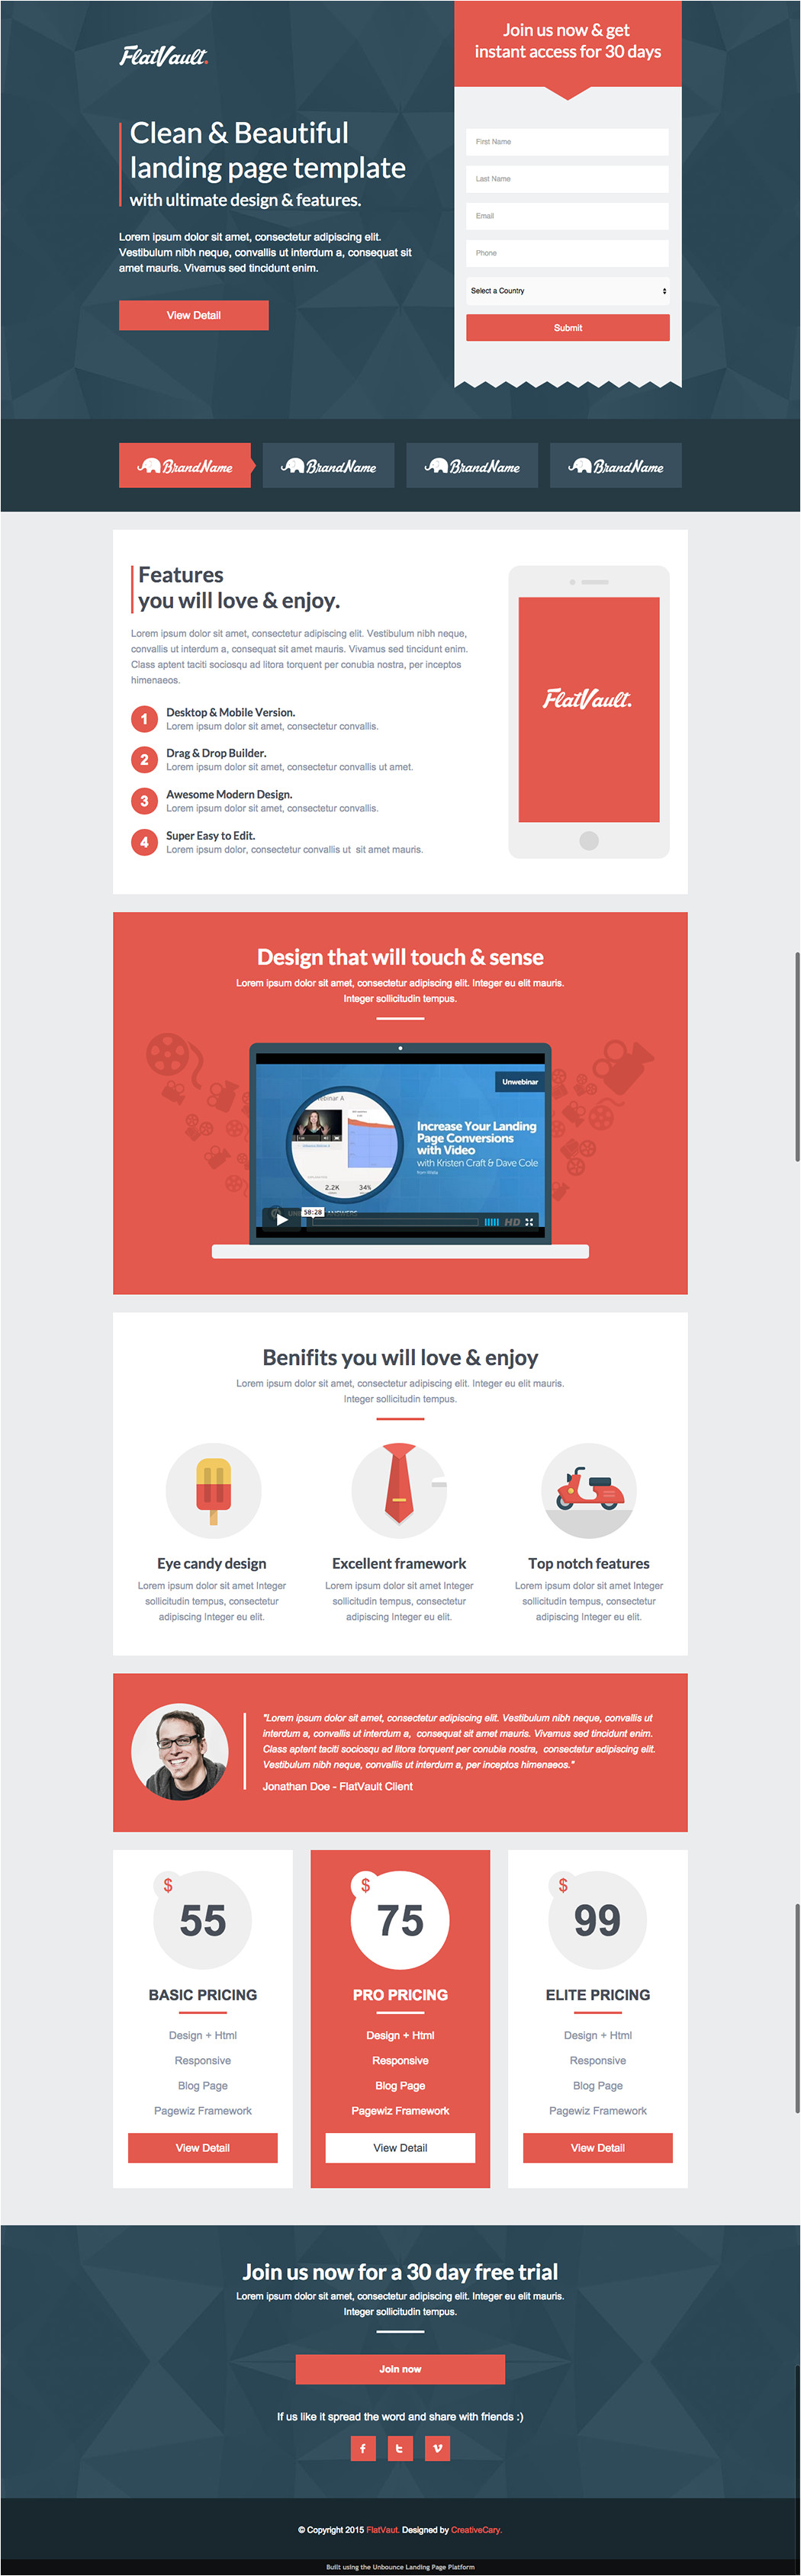 Landing Page with Video Template 8 Mobile Friendly Landing Page Templates Designed with Love